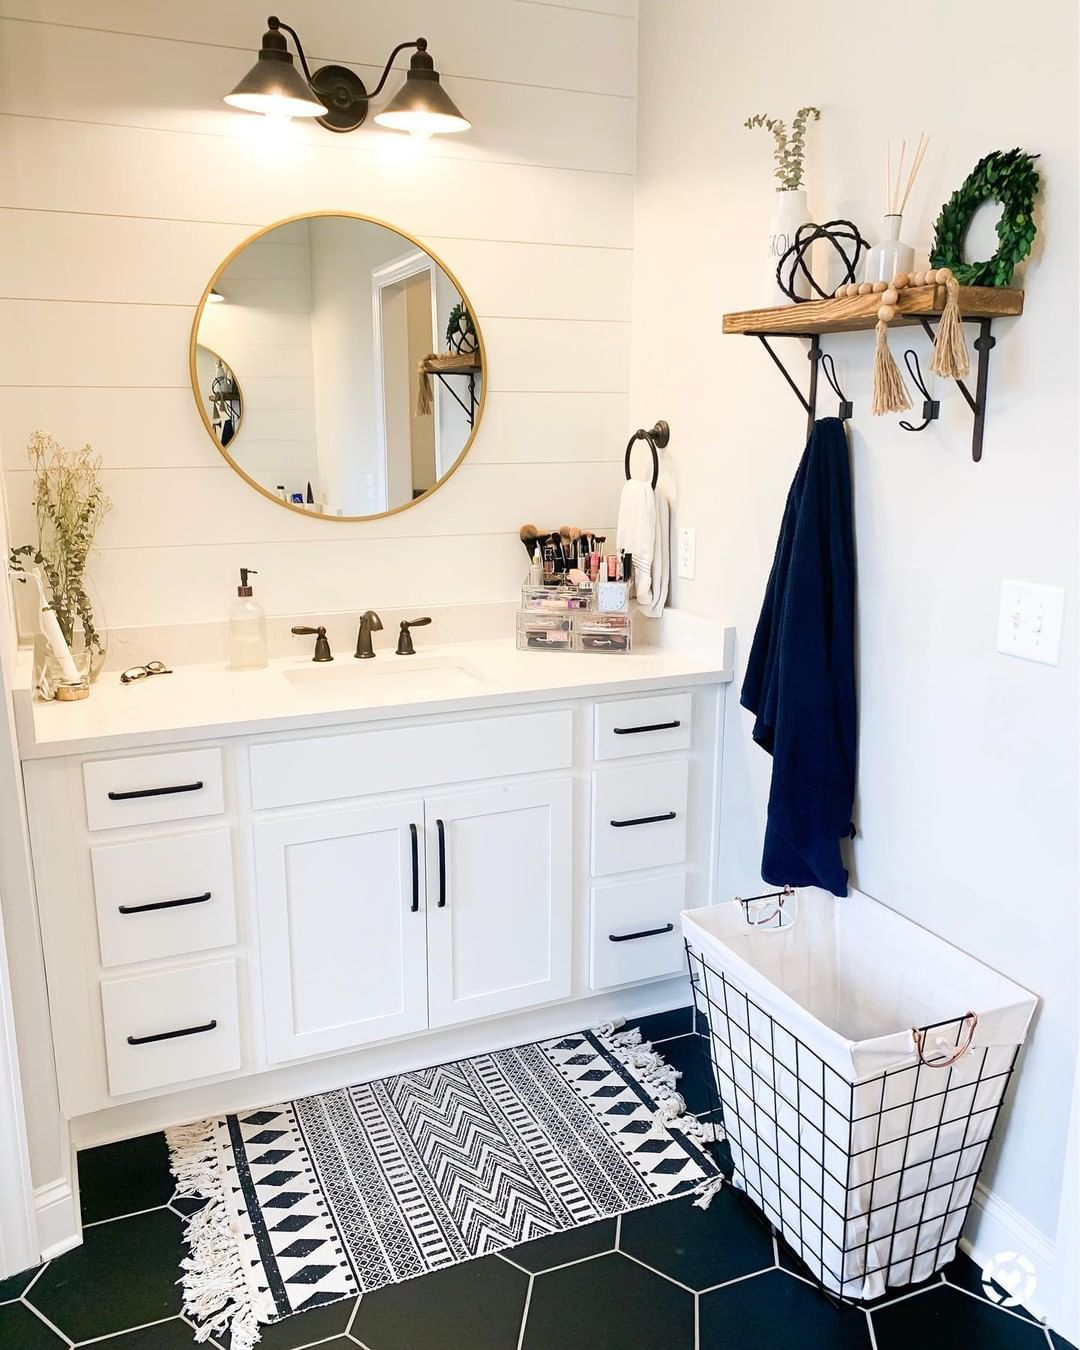 Love everything about this bathroom @jordanleegreenwell, especially the flooring 😍💕. Click the image to try our free home design app.  (Keywords: bathroom remodel, small bathroom ideas, bathroom ideas, bathroom decor, dream room, room ideas, bathroom painting ideas, bathroom shelf, bathroom color, bathroom organization ideas, bathtub, beautiful homes)